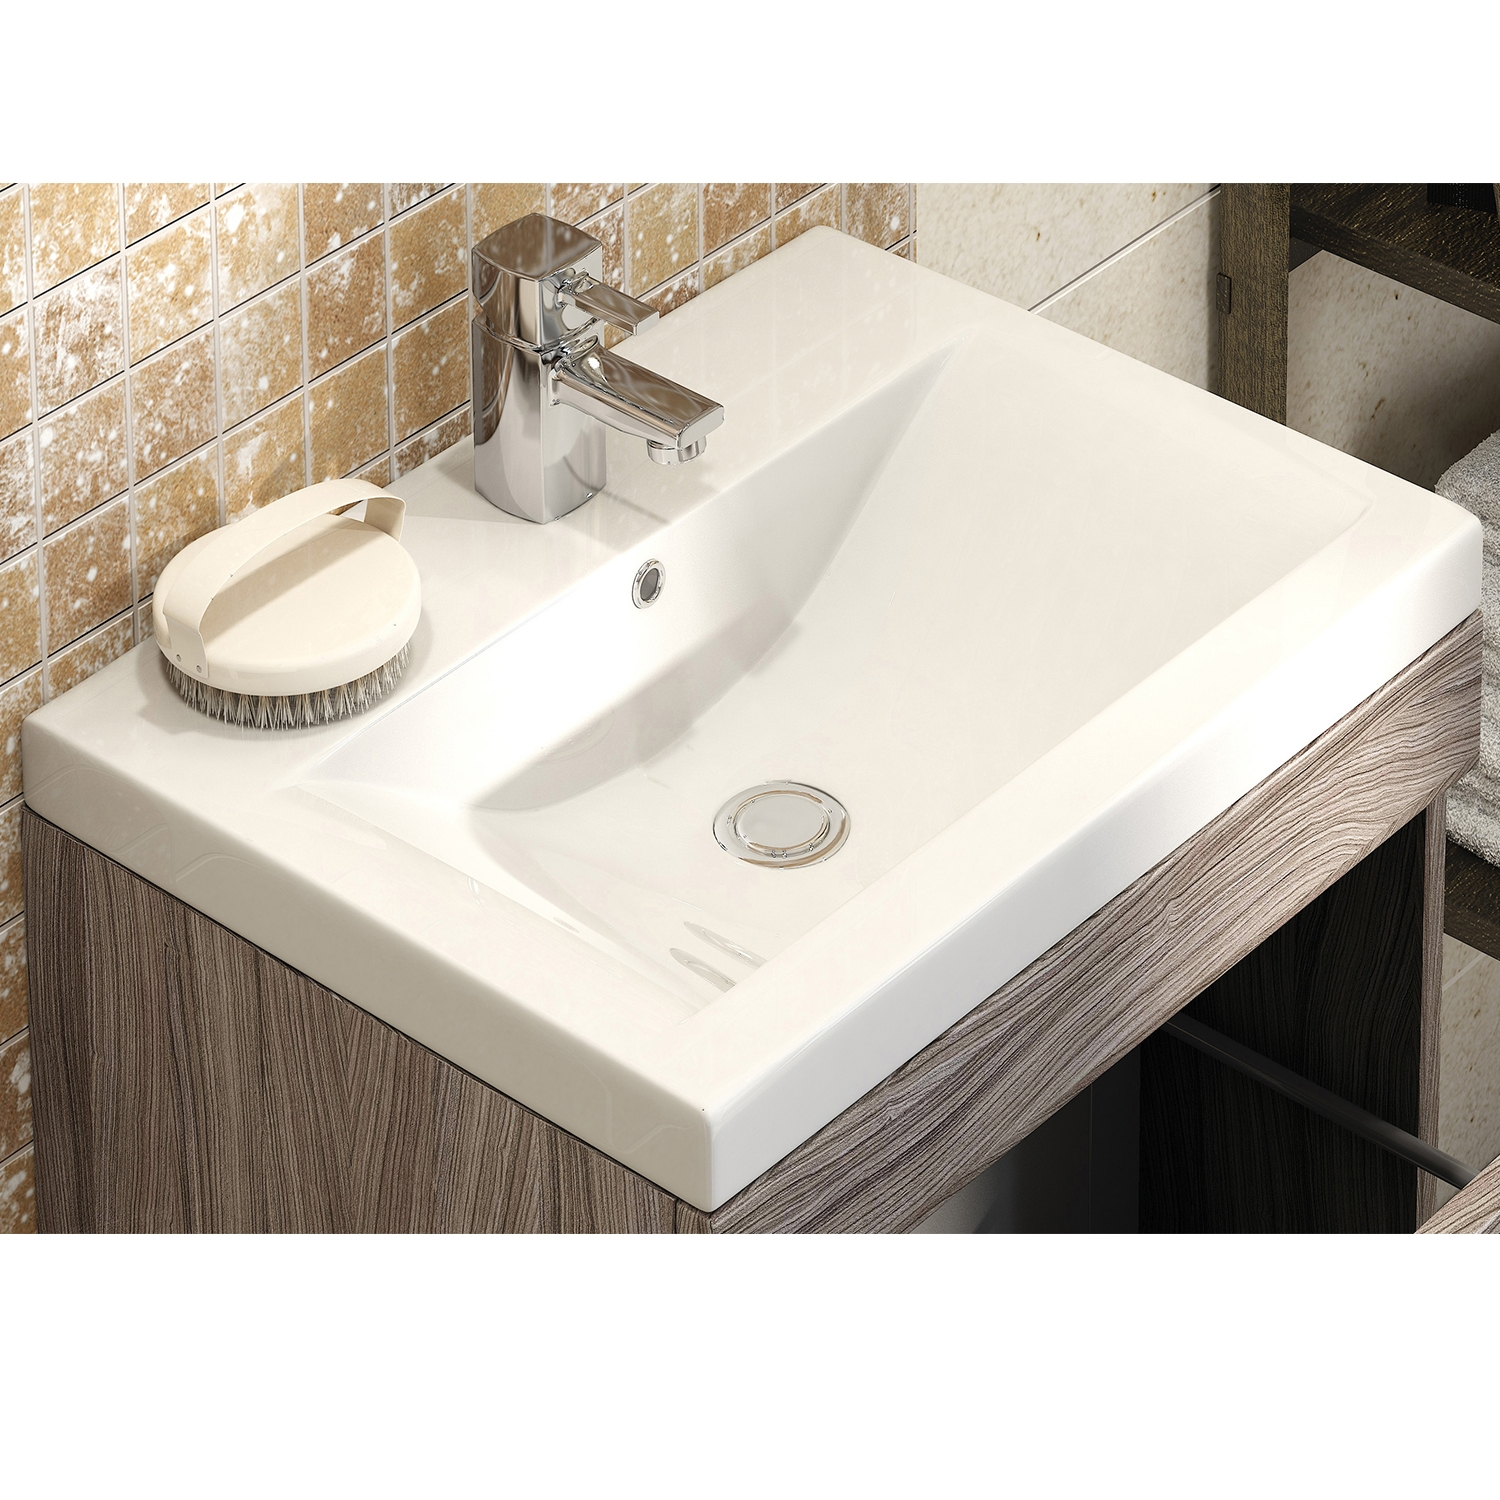 Premier Shipton Wall Hung Vanity Unit with Mid-Edged Basin 500mm Wide - Driftwood 1 Tap Hole